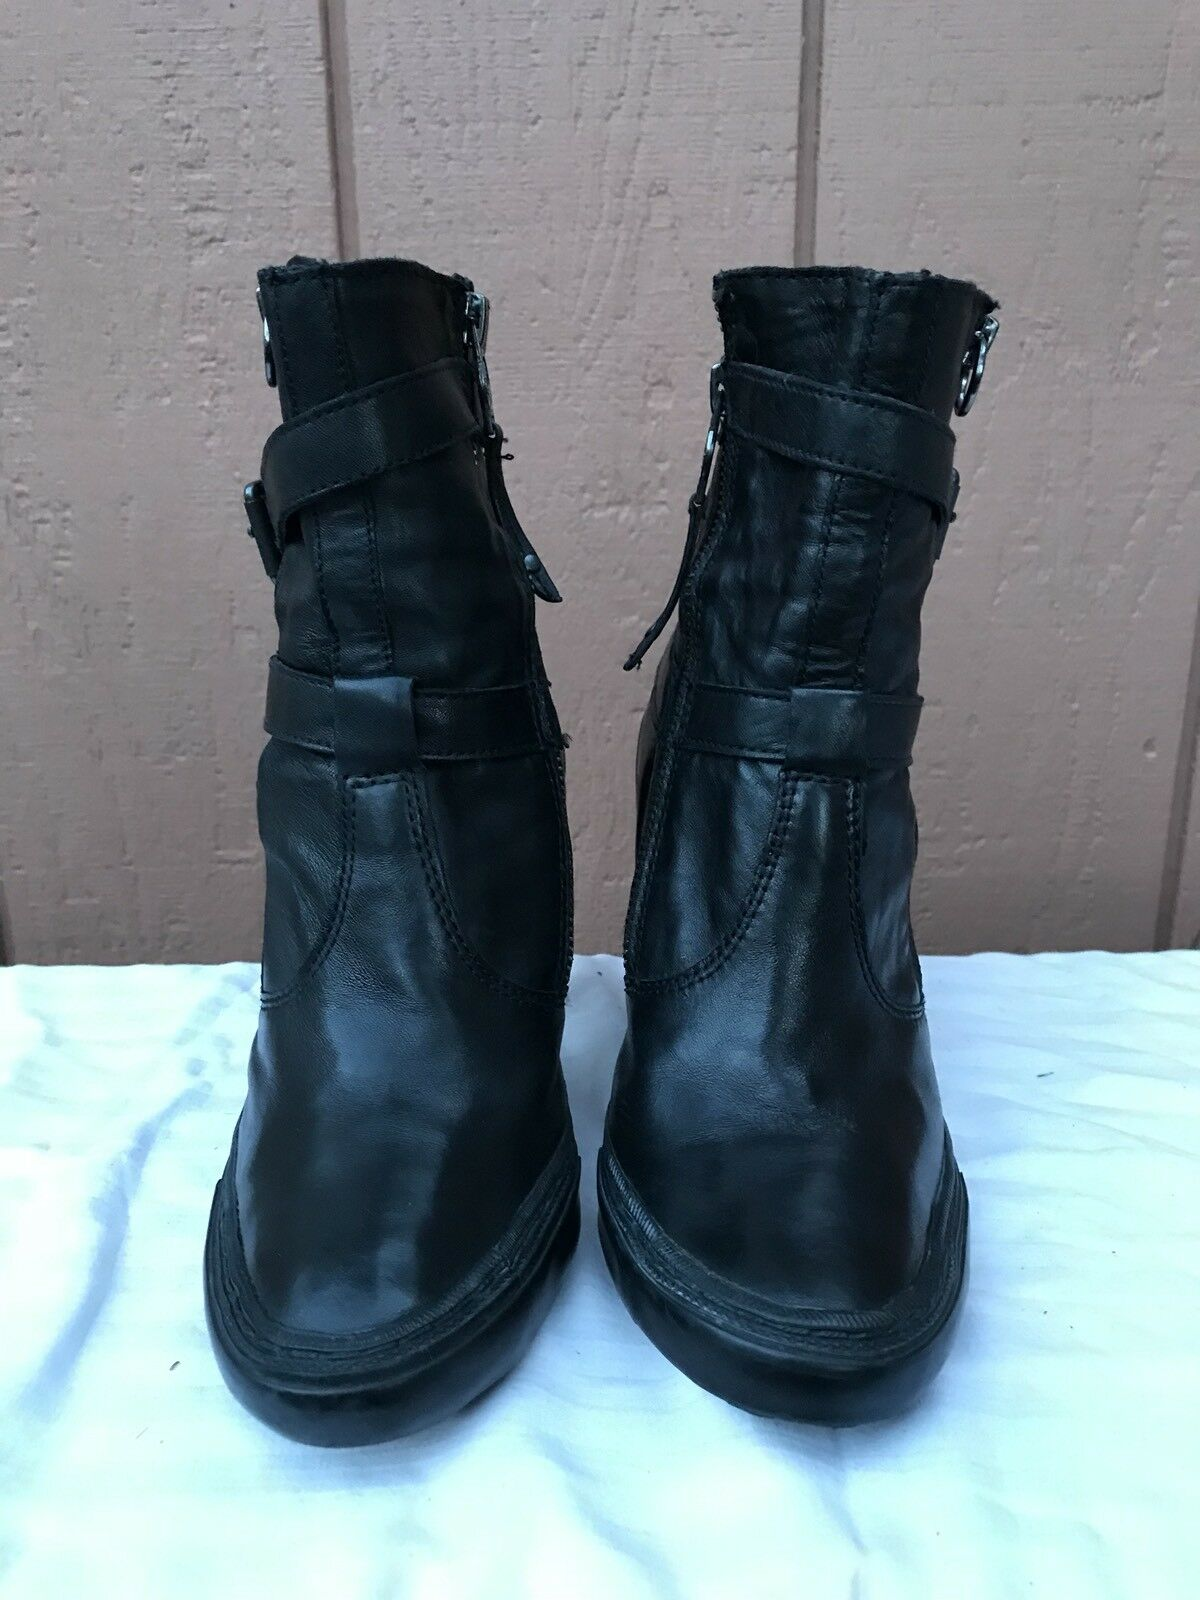 ASH PENNY Black Leather Ankle Boots US 8 Zippers Straps Buckles Heels